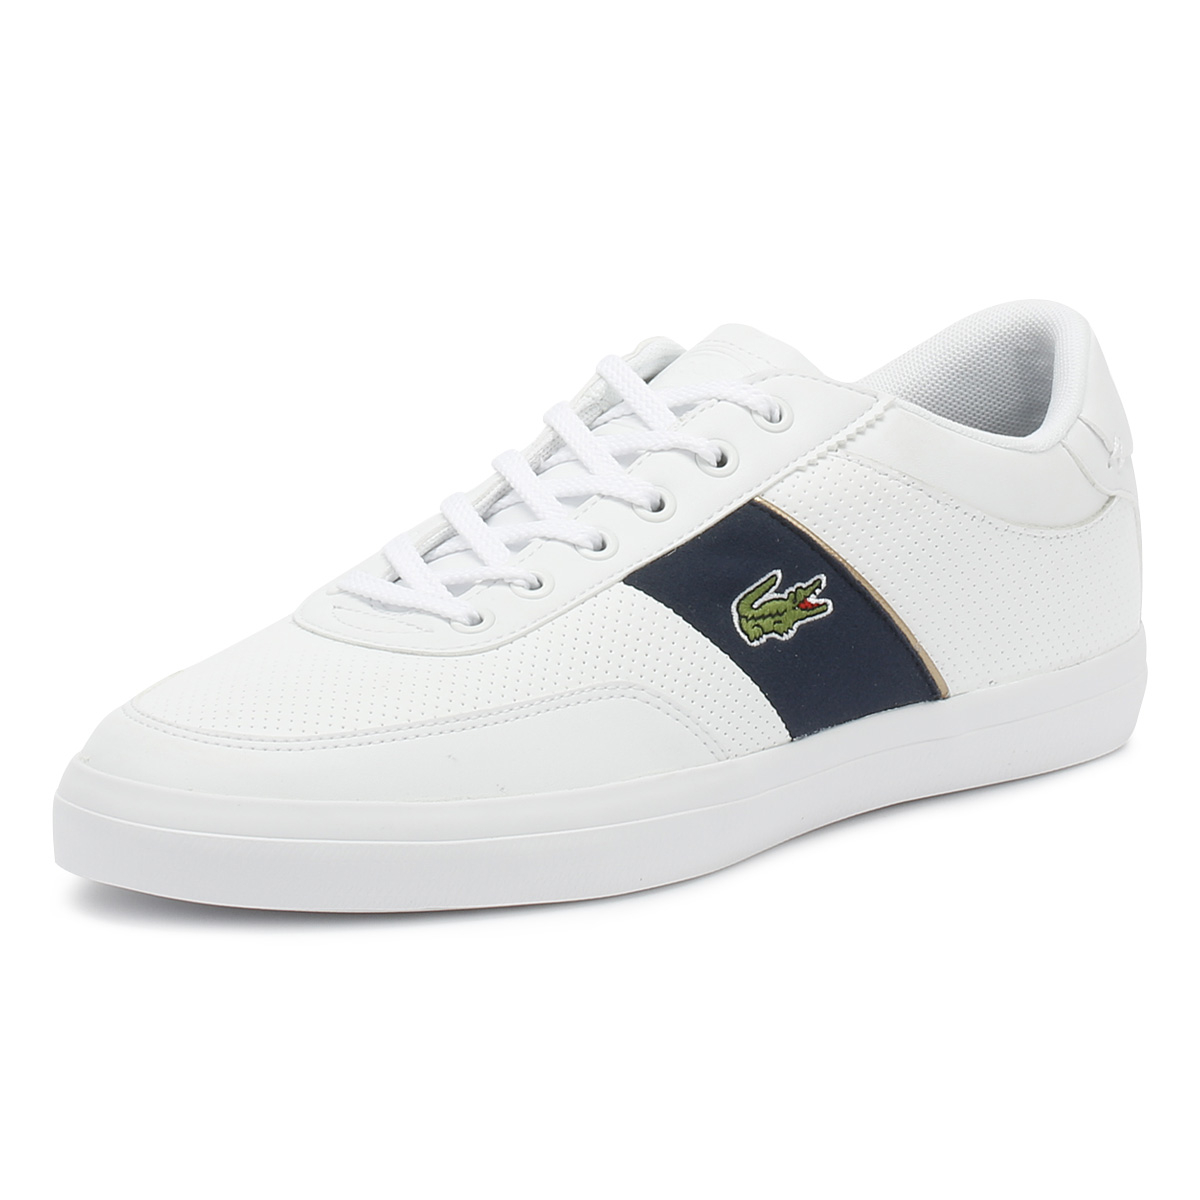 18b23d316b21c5 Details about Lacoste Mens Trainers White   Navy Court Master 318 1 Sport  Casual Shoes